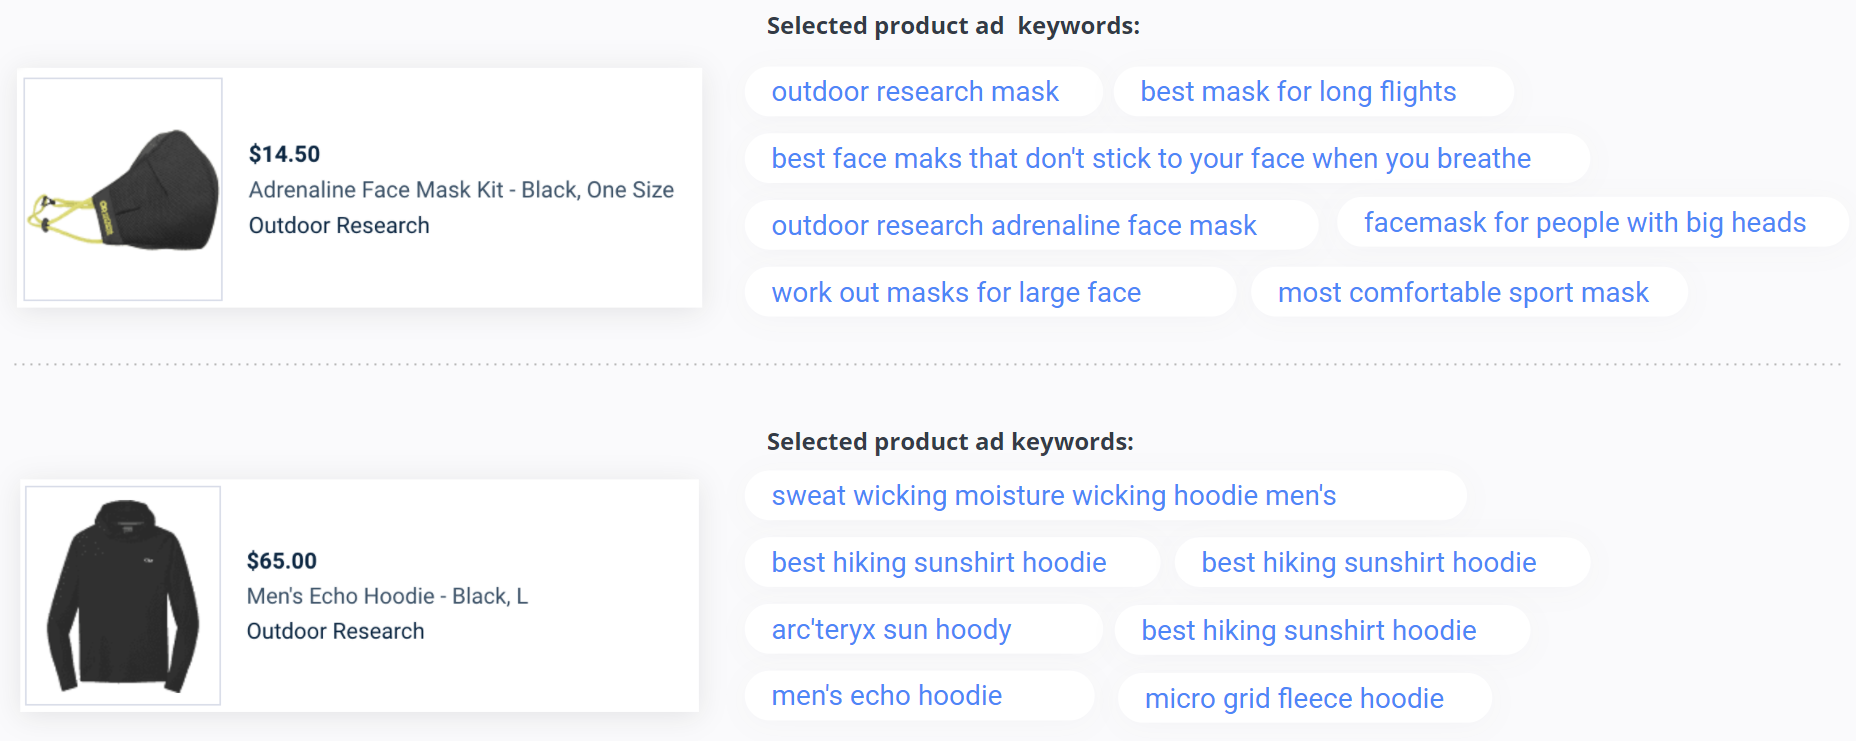 Outdoor Research - Product Ad Keywords